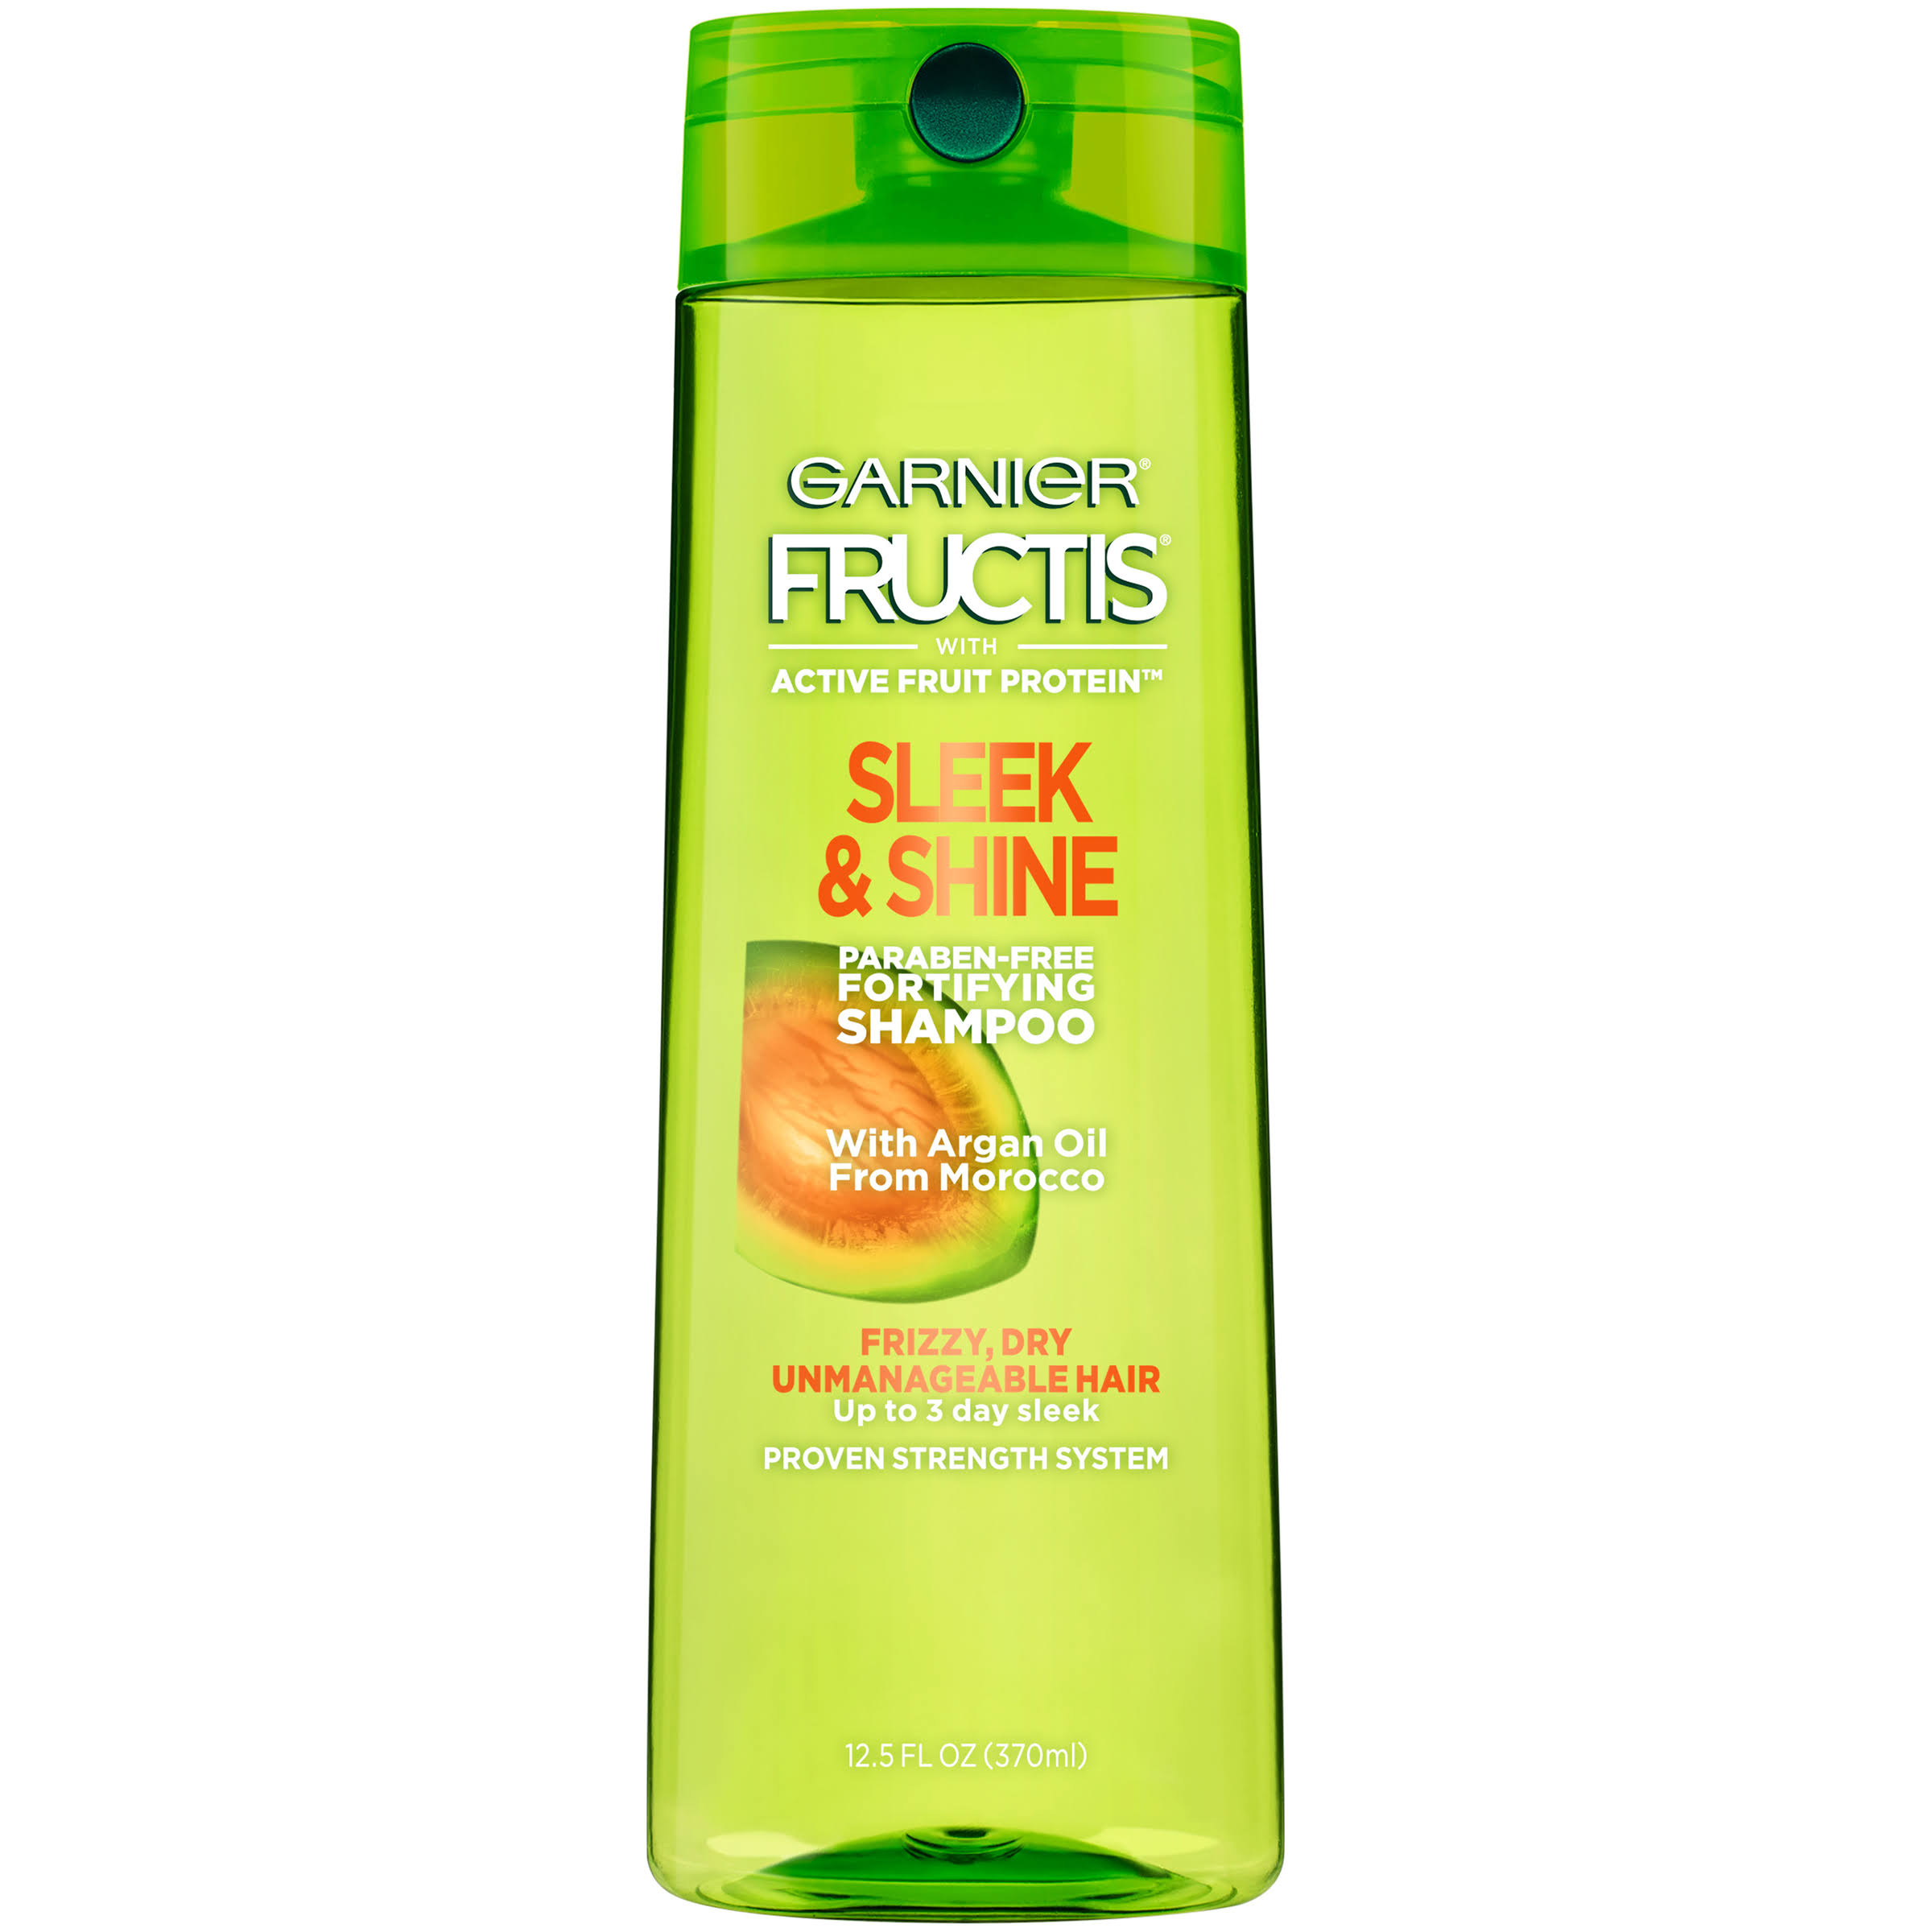 Garnier Fructis Sleek and Shine Shampoo - 12.5oz